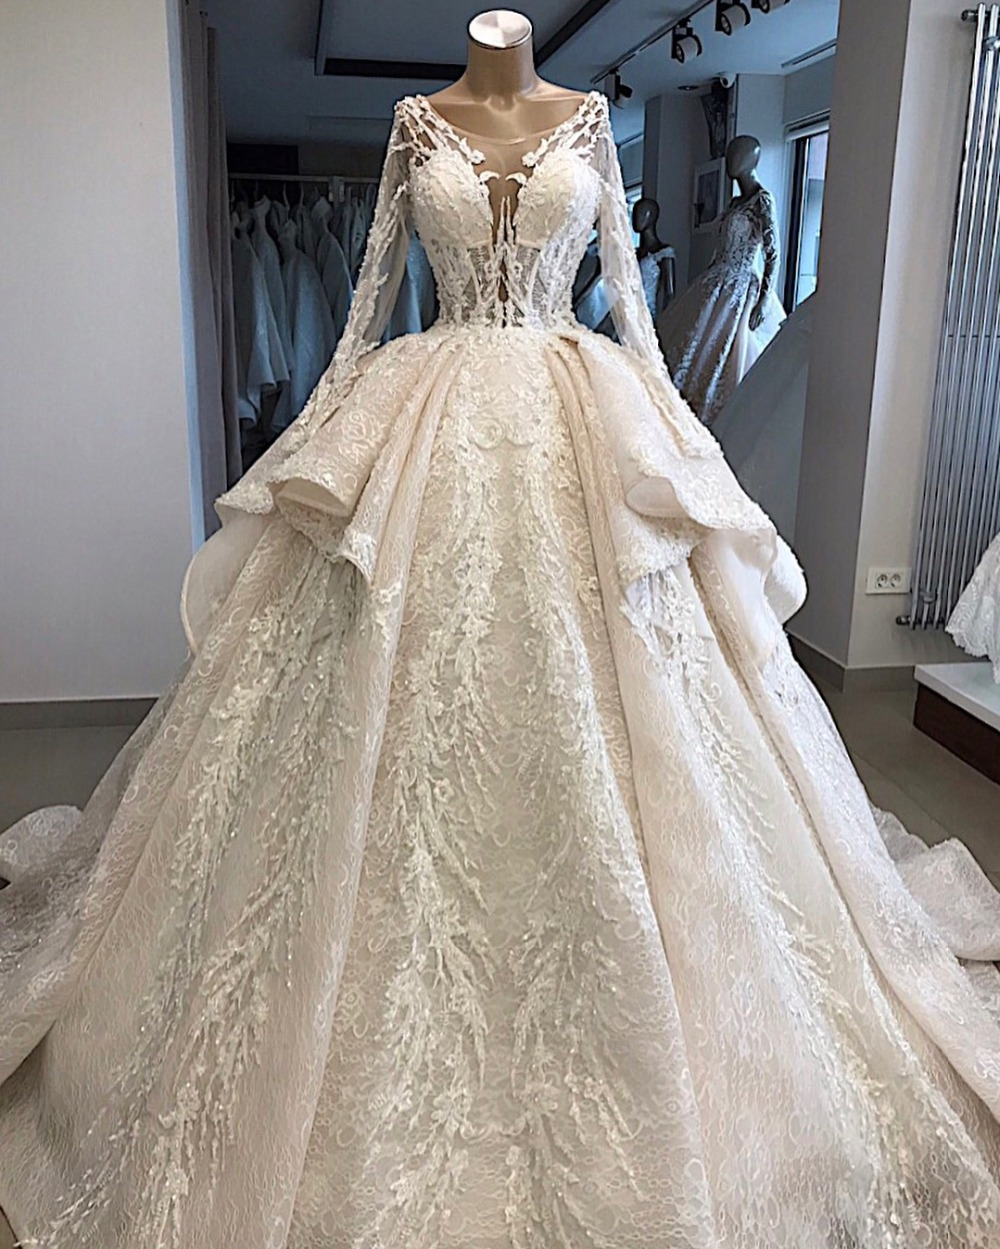 2020 Luxury Arabic Long Sleeves Wedding Dresses Lace Applique Beading New Designer Bride Wedding Gowns Ball Gown Robe De Mariee